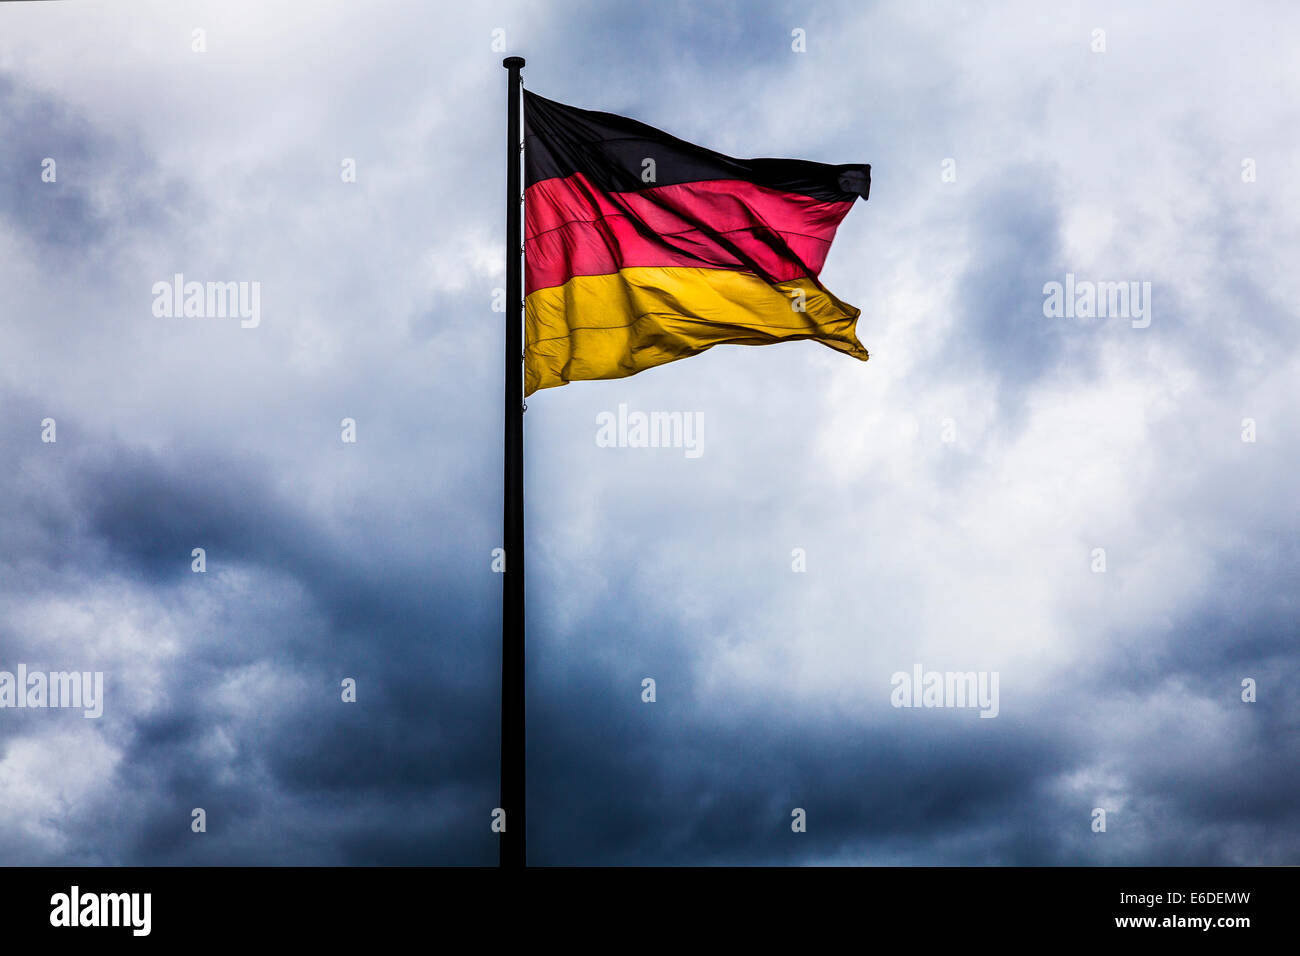 Storm clouds gathering behind the German flag, symbolic of political crisis, war or unrest. - Stock Image